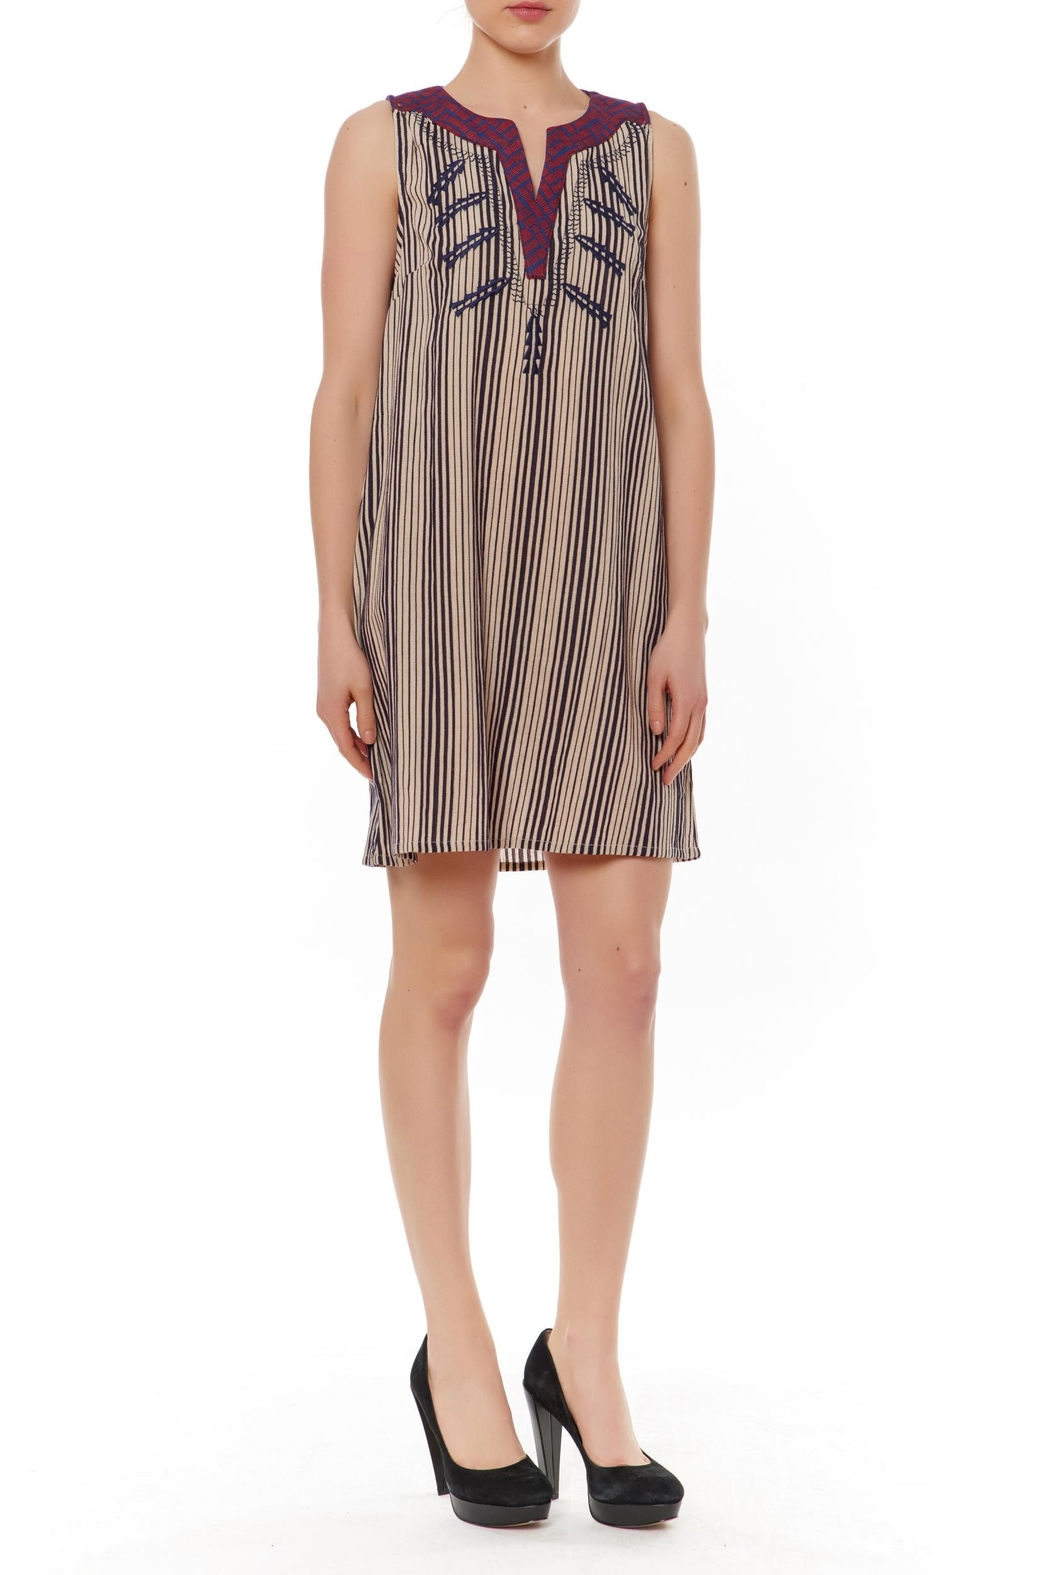 Thml Slvless Stripe Dress - Main Image